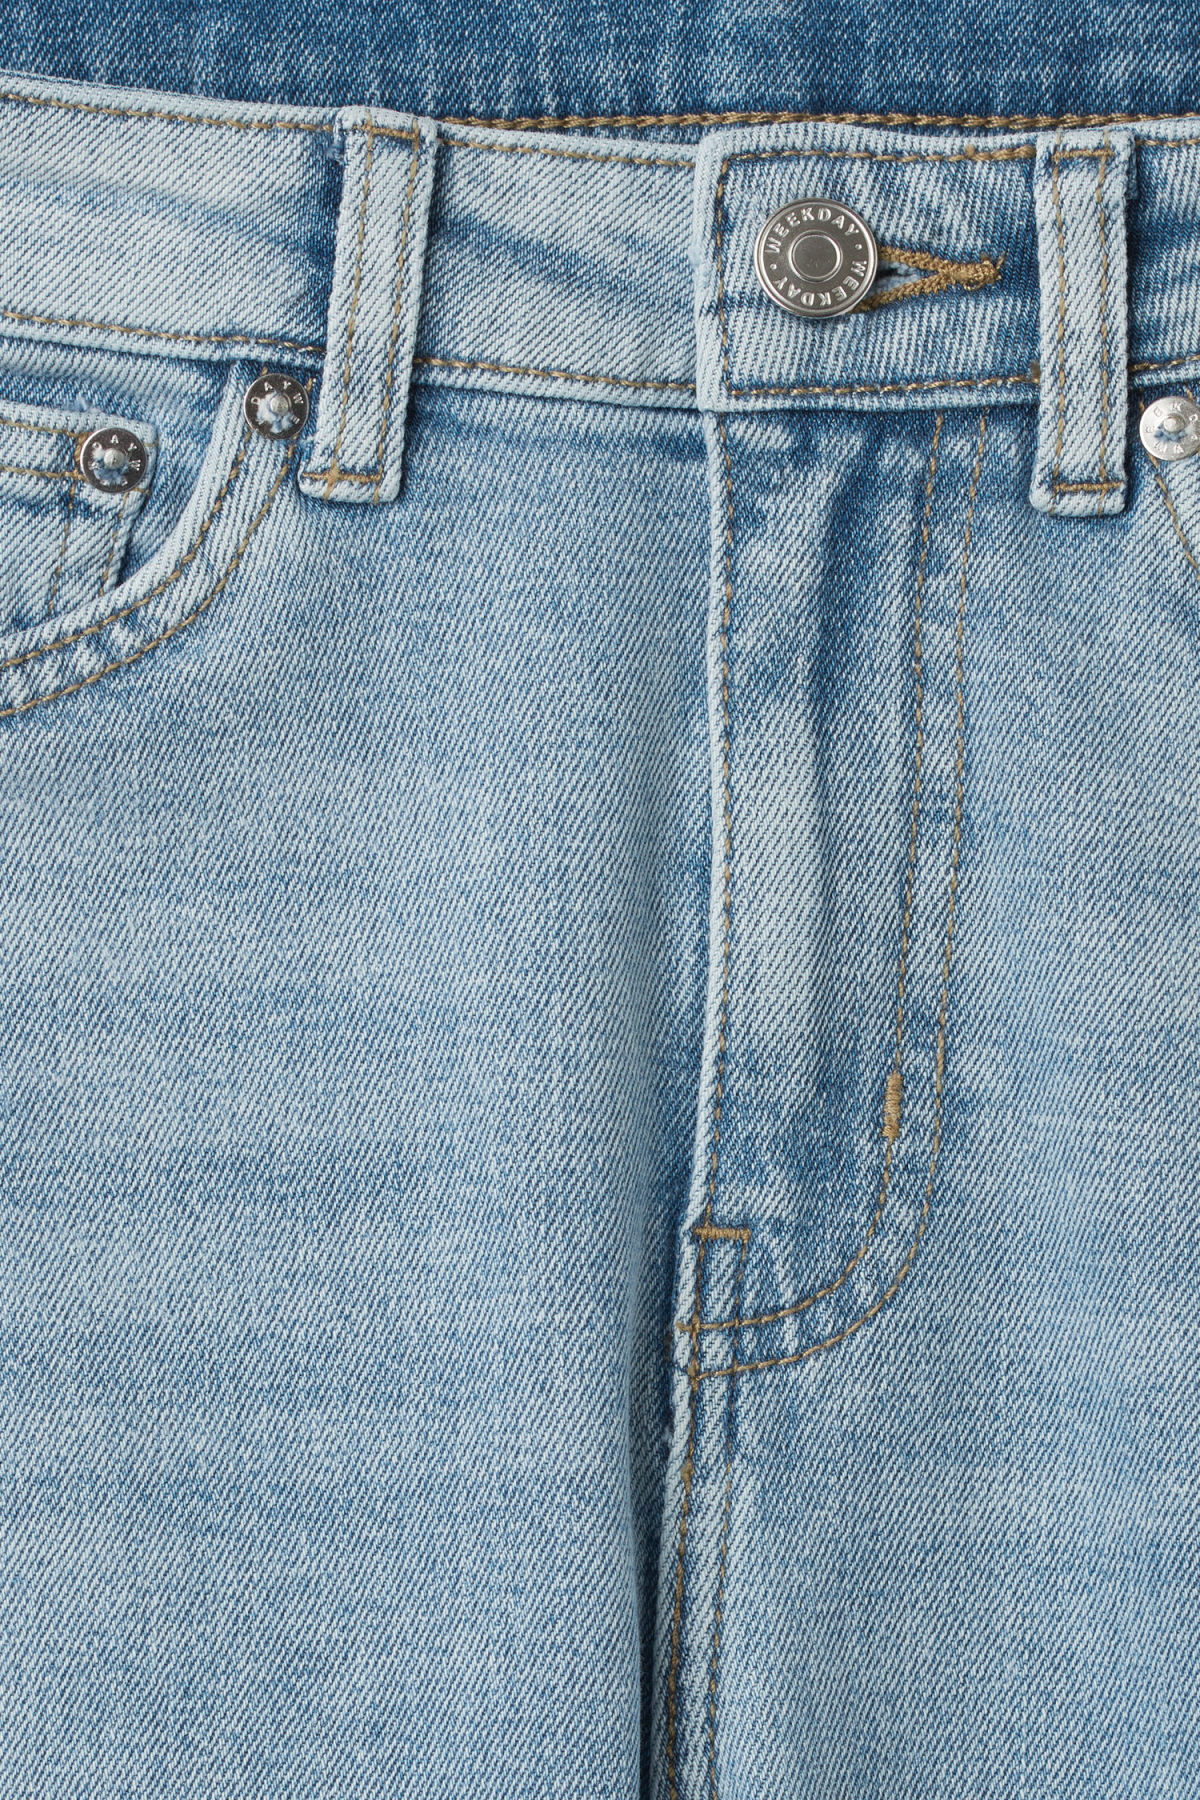 Detailed image of Weekday thursday reused blue jeans in blue